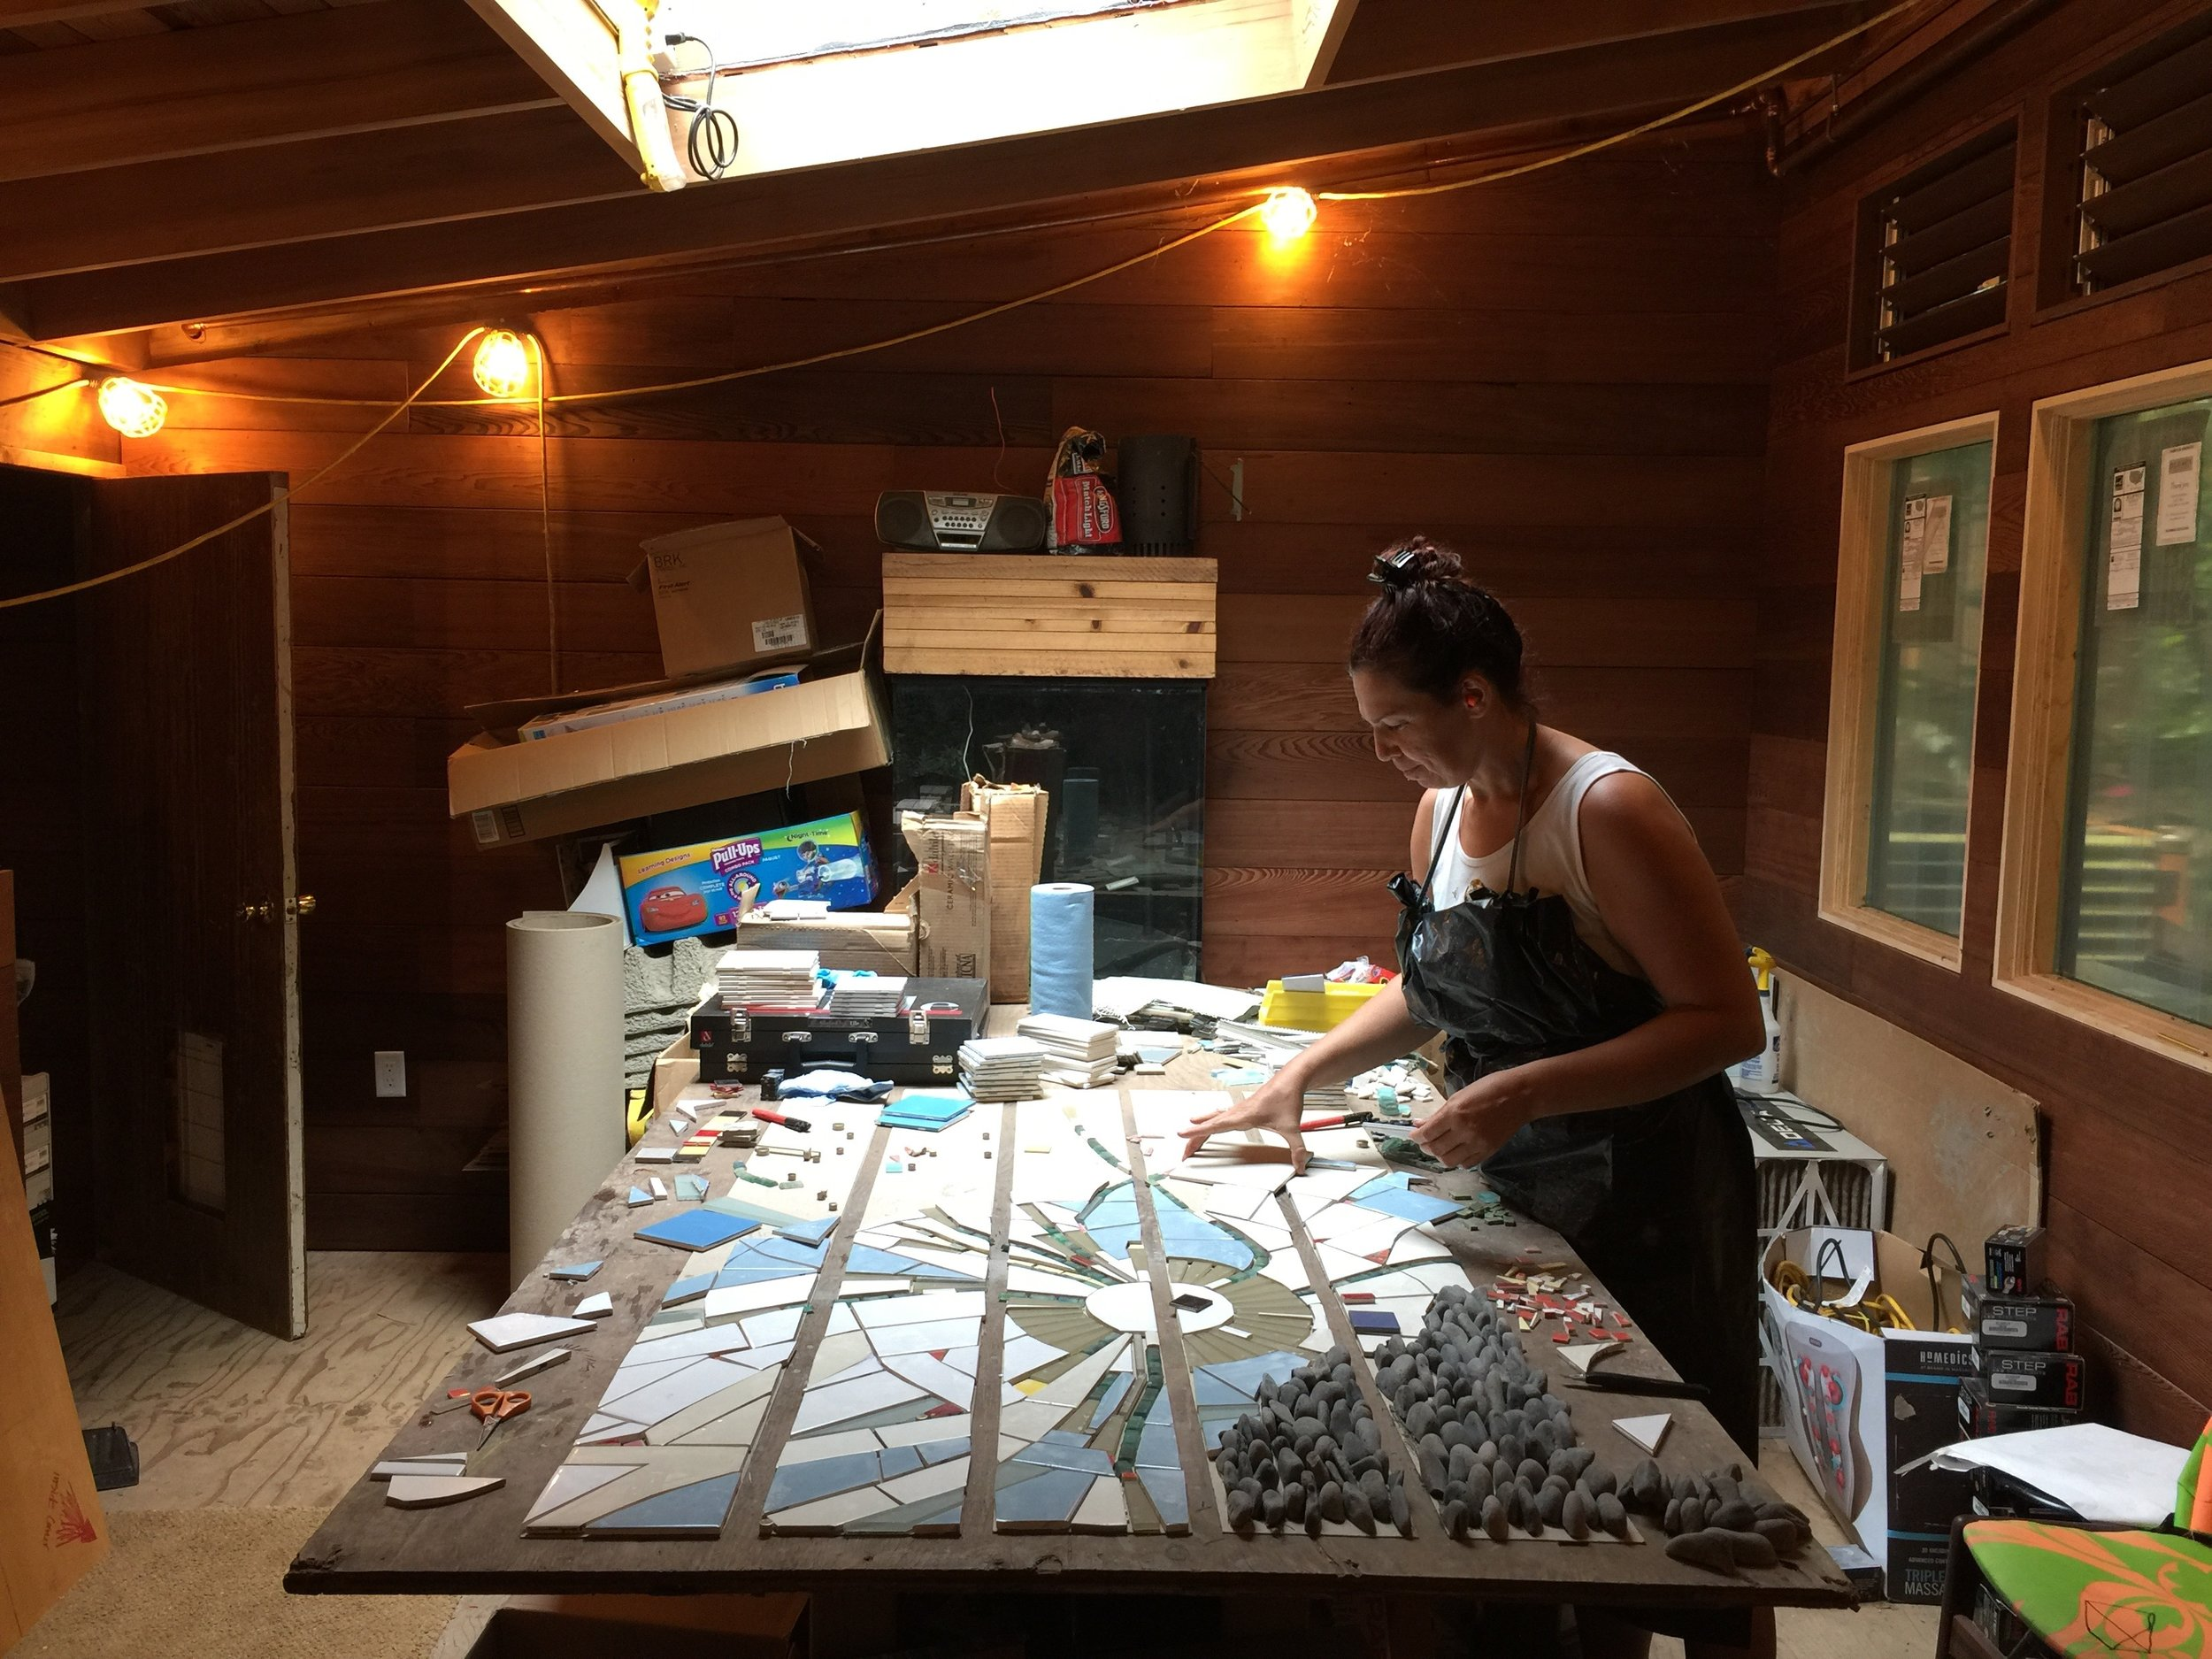 Above: Dandelion stair set being assembled by Maya.